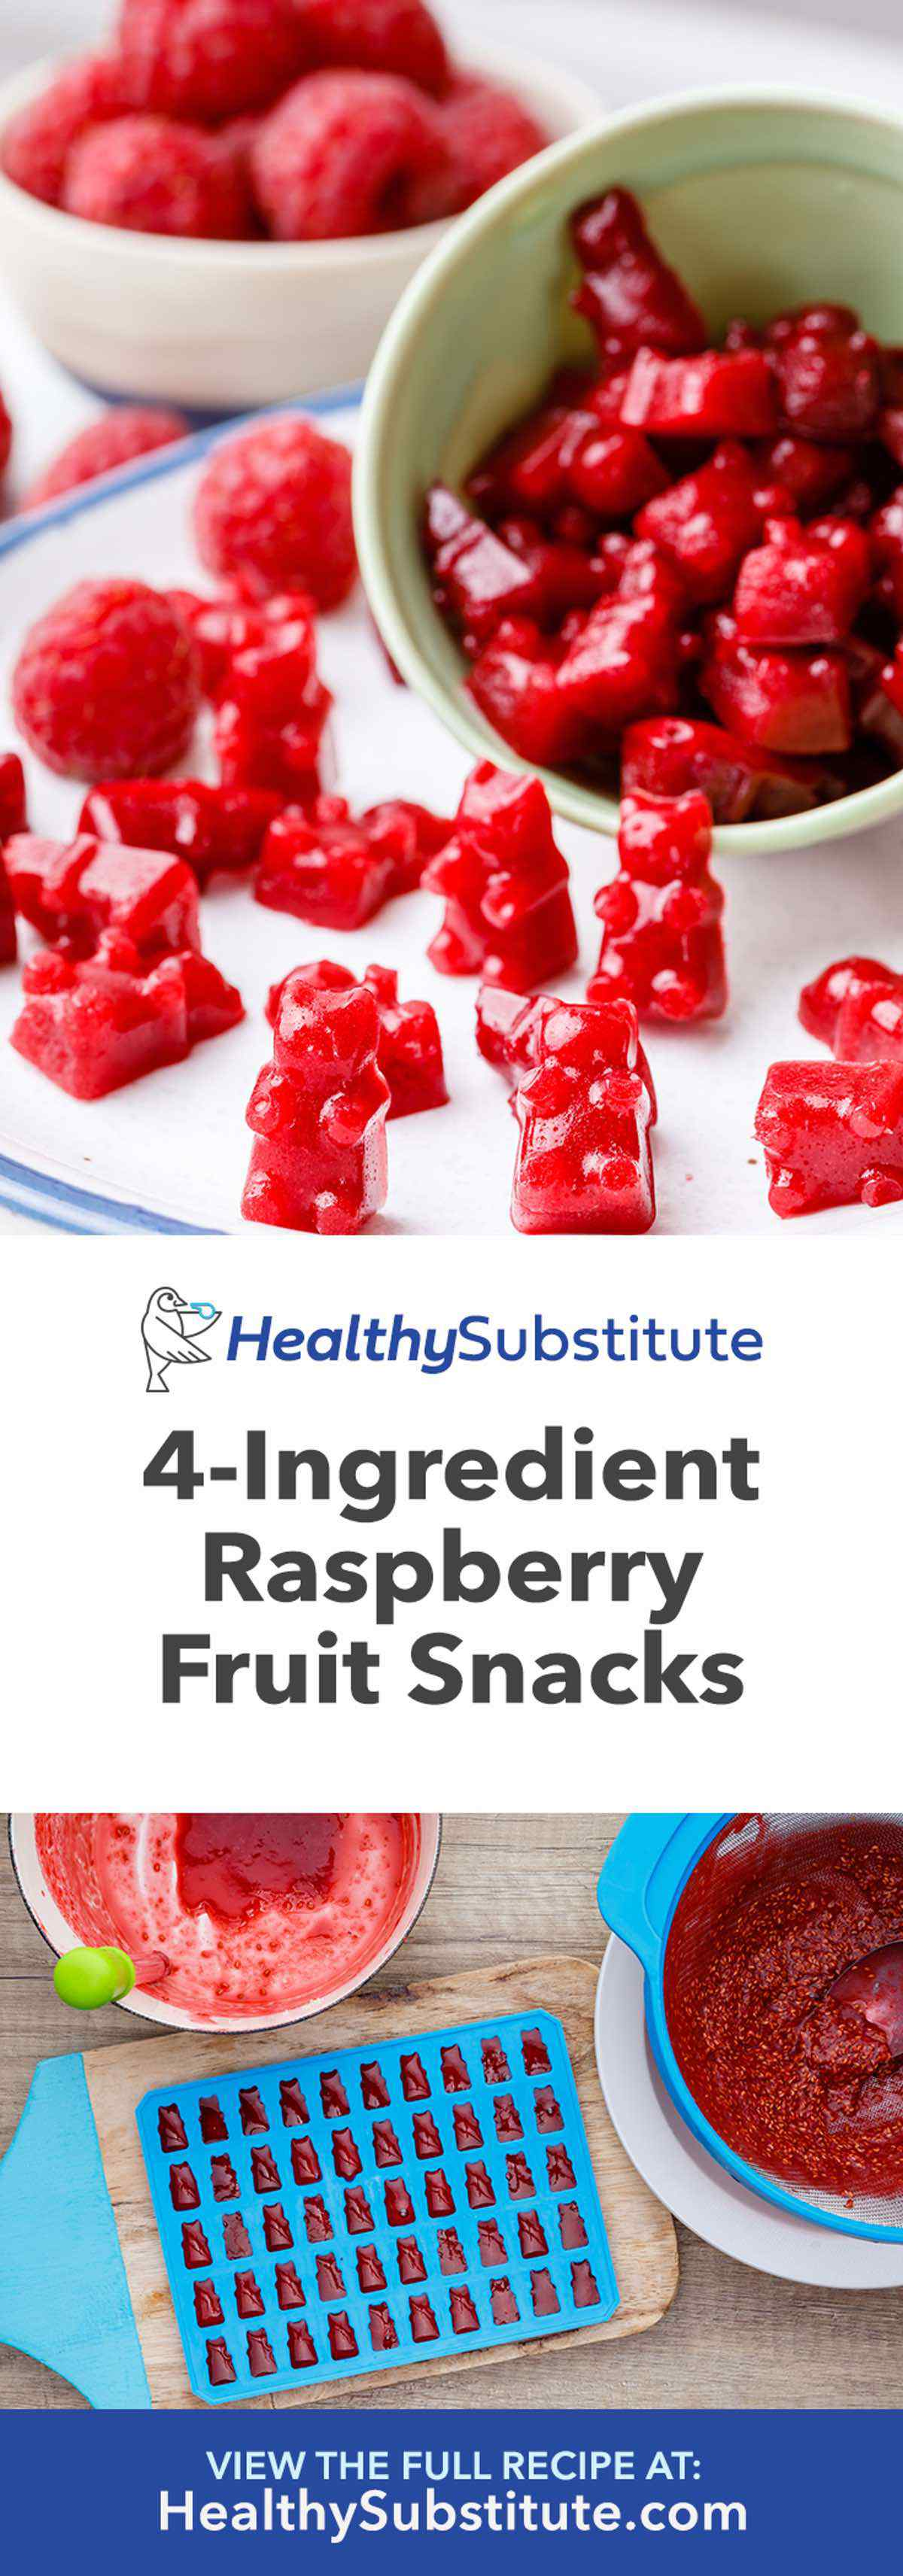 Homemade Raspberry Gummy Fruit Snacks